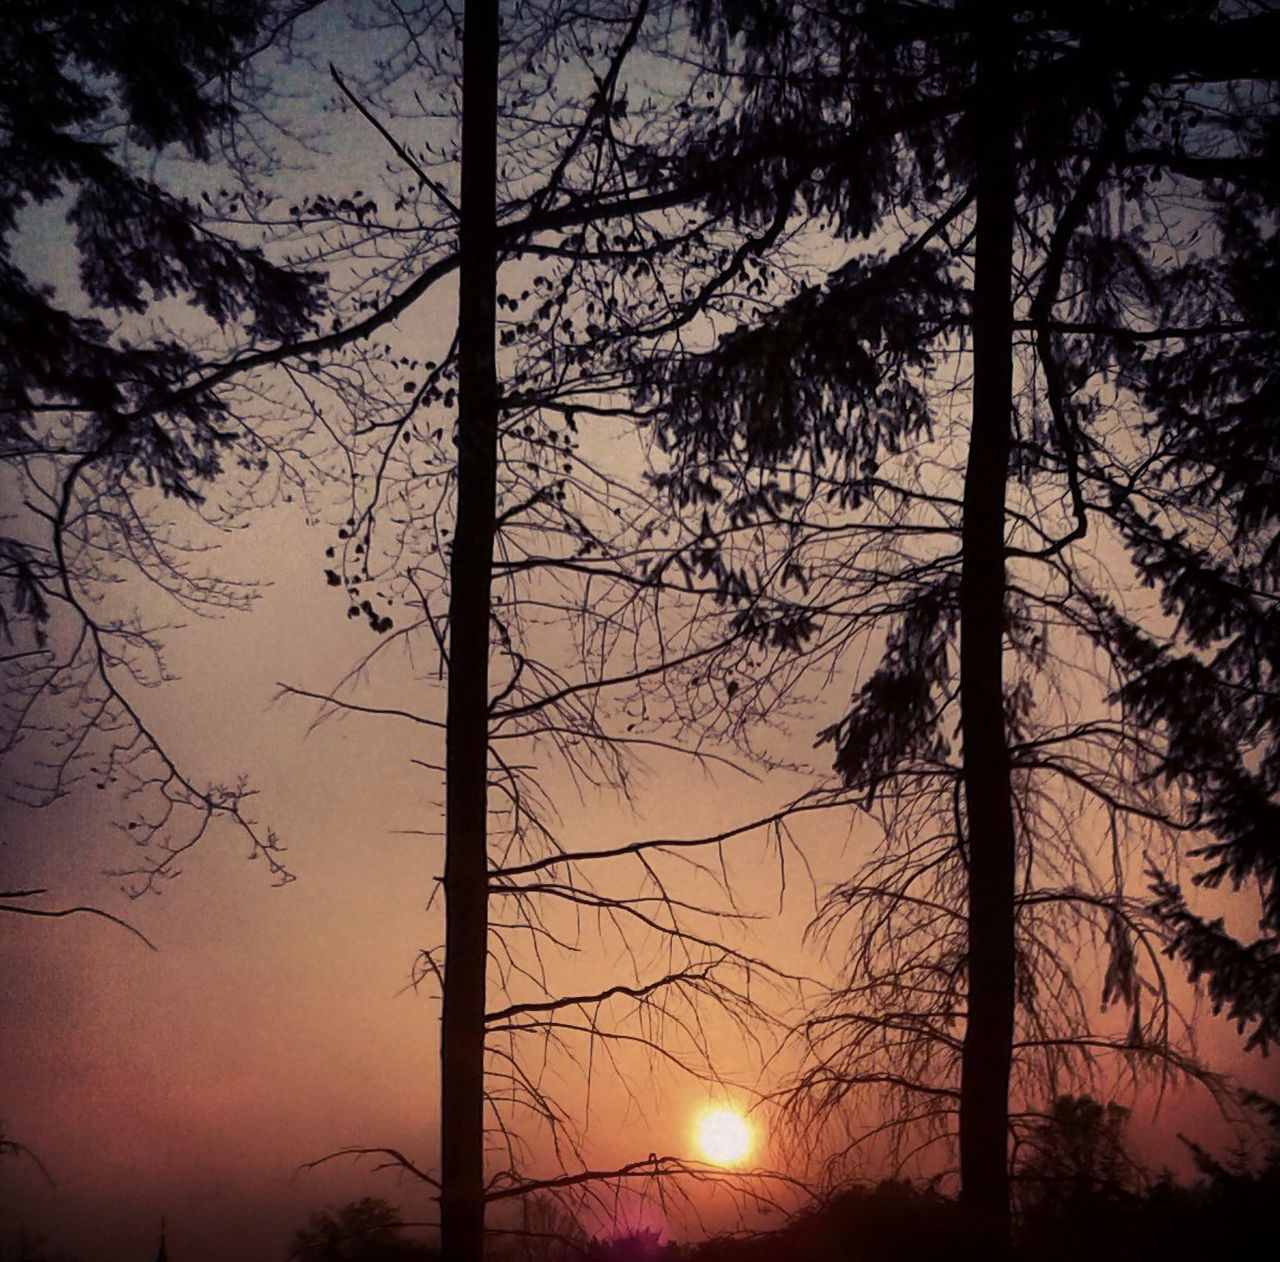 tree, silhouette, sunset, tree trunk, nature, sun, bare tree, beauty in nature, outdoors, scenics, no people, branch, tranquility, sky, tranquil scene, growth, landscape, forest fire, day